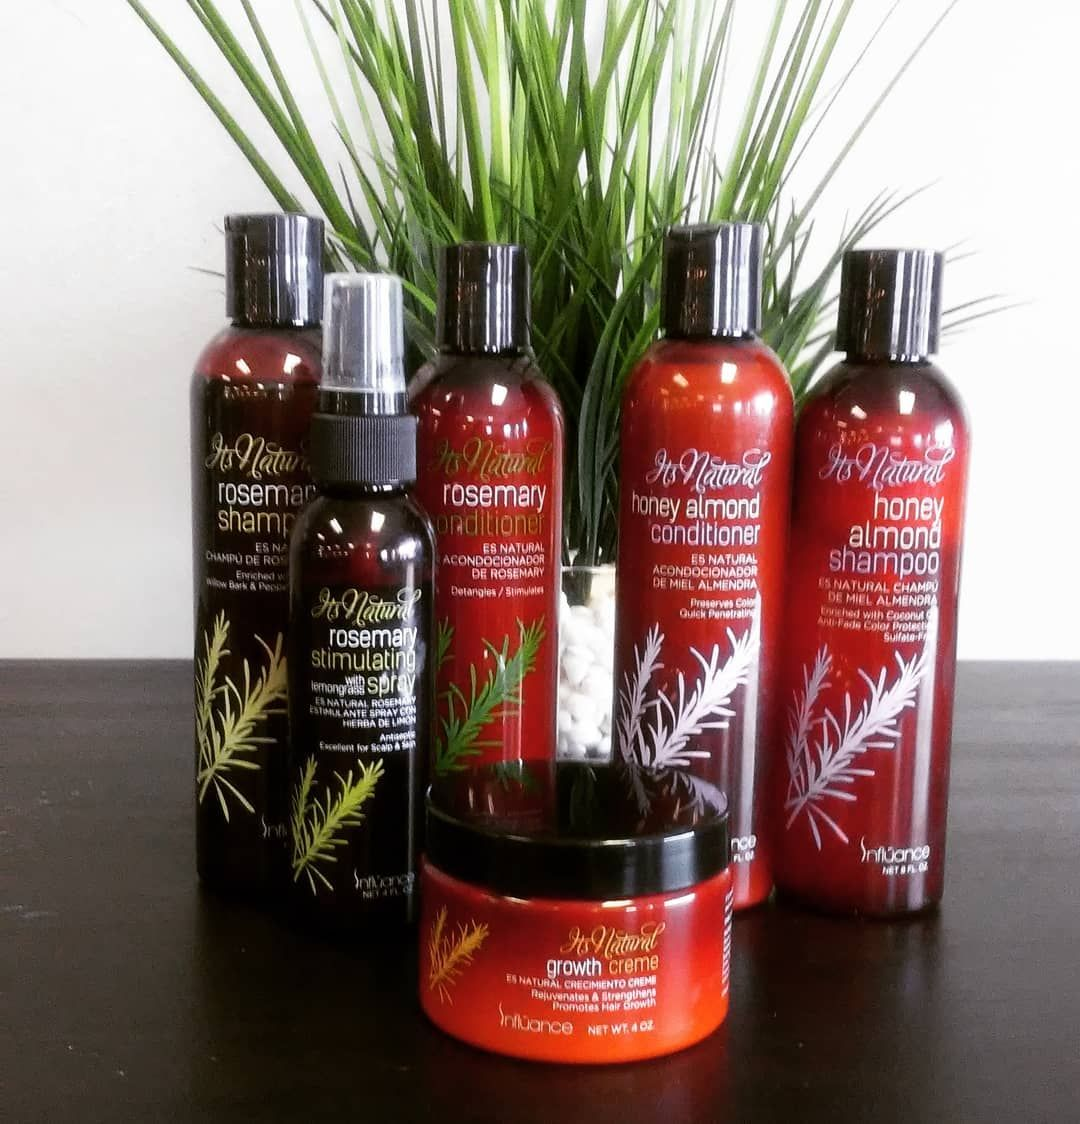 Naturalhairproducts Salonproducts Influancehaircare In Stock Now